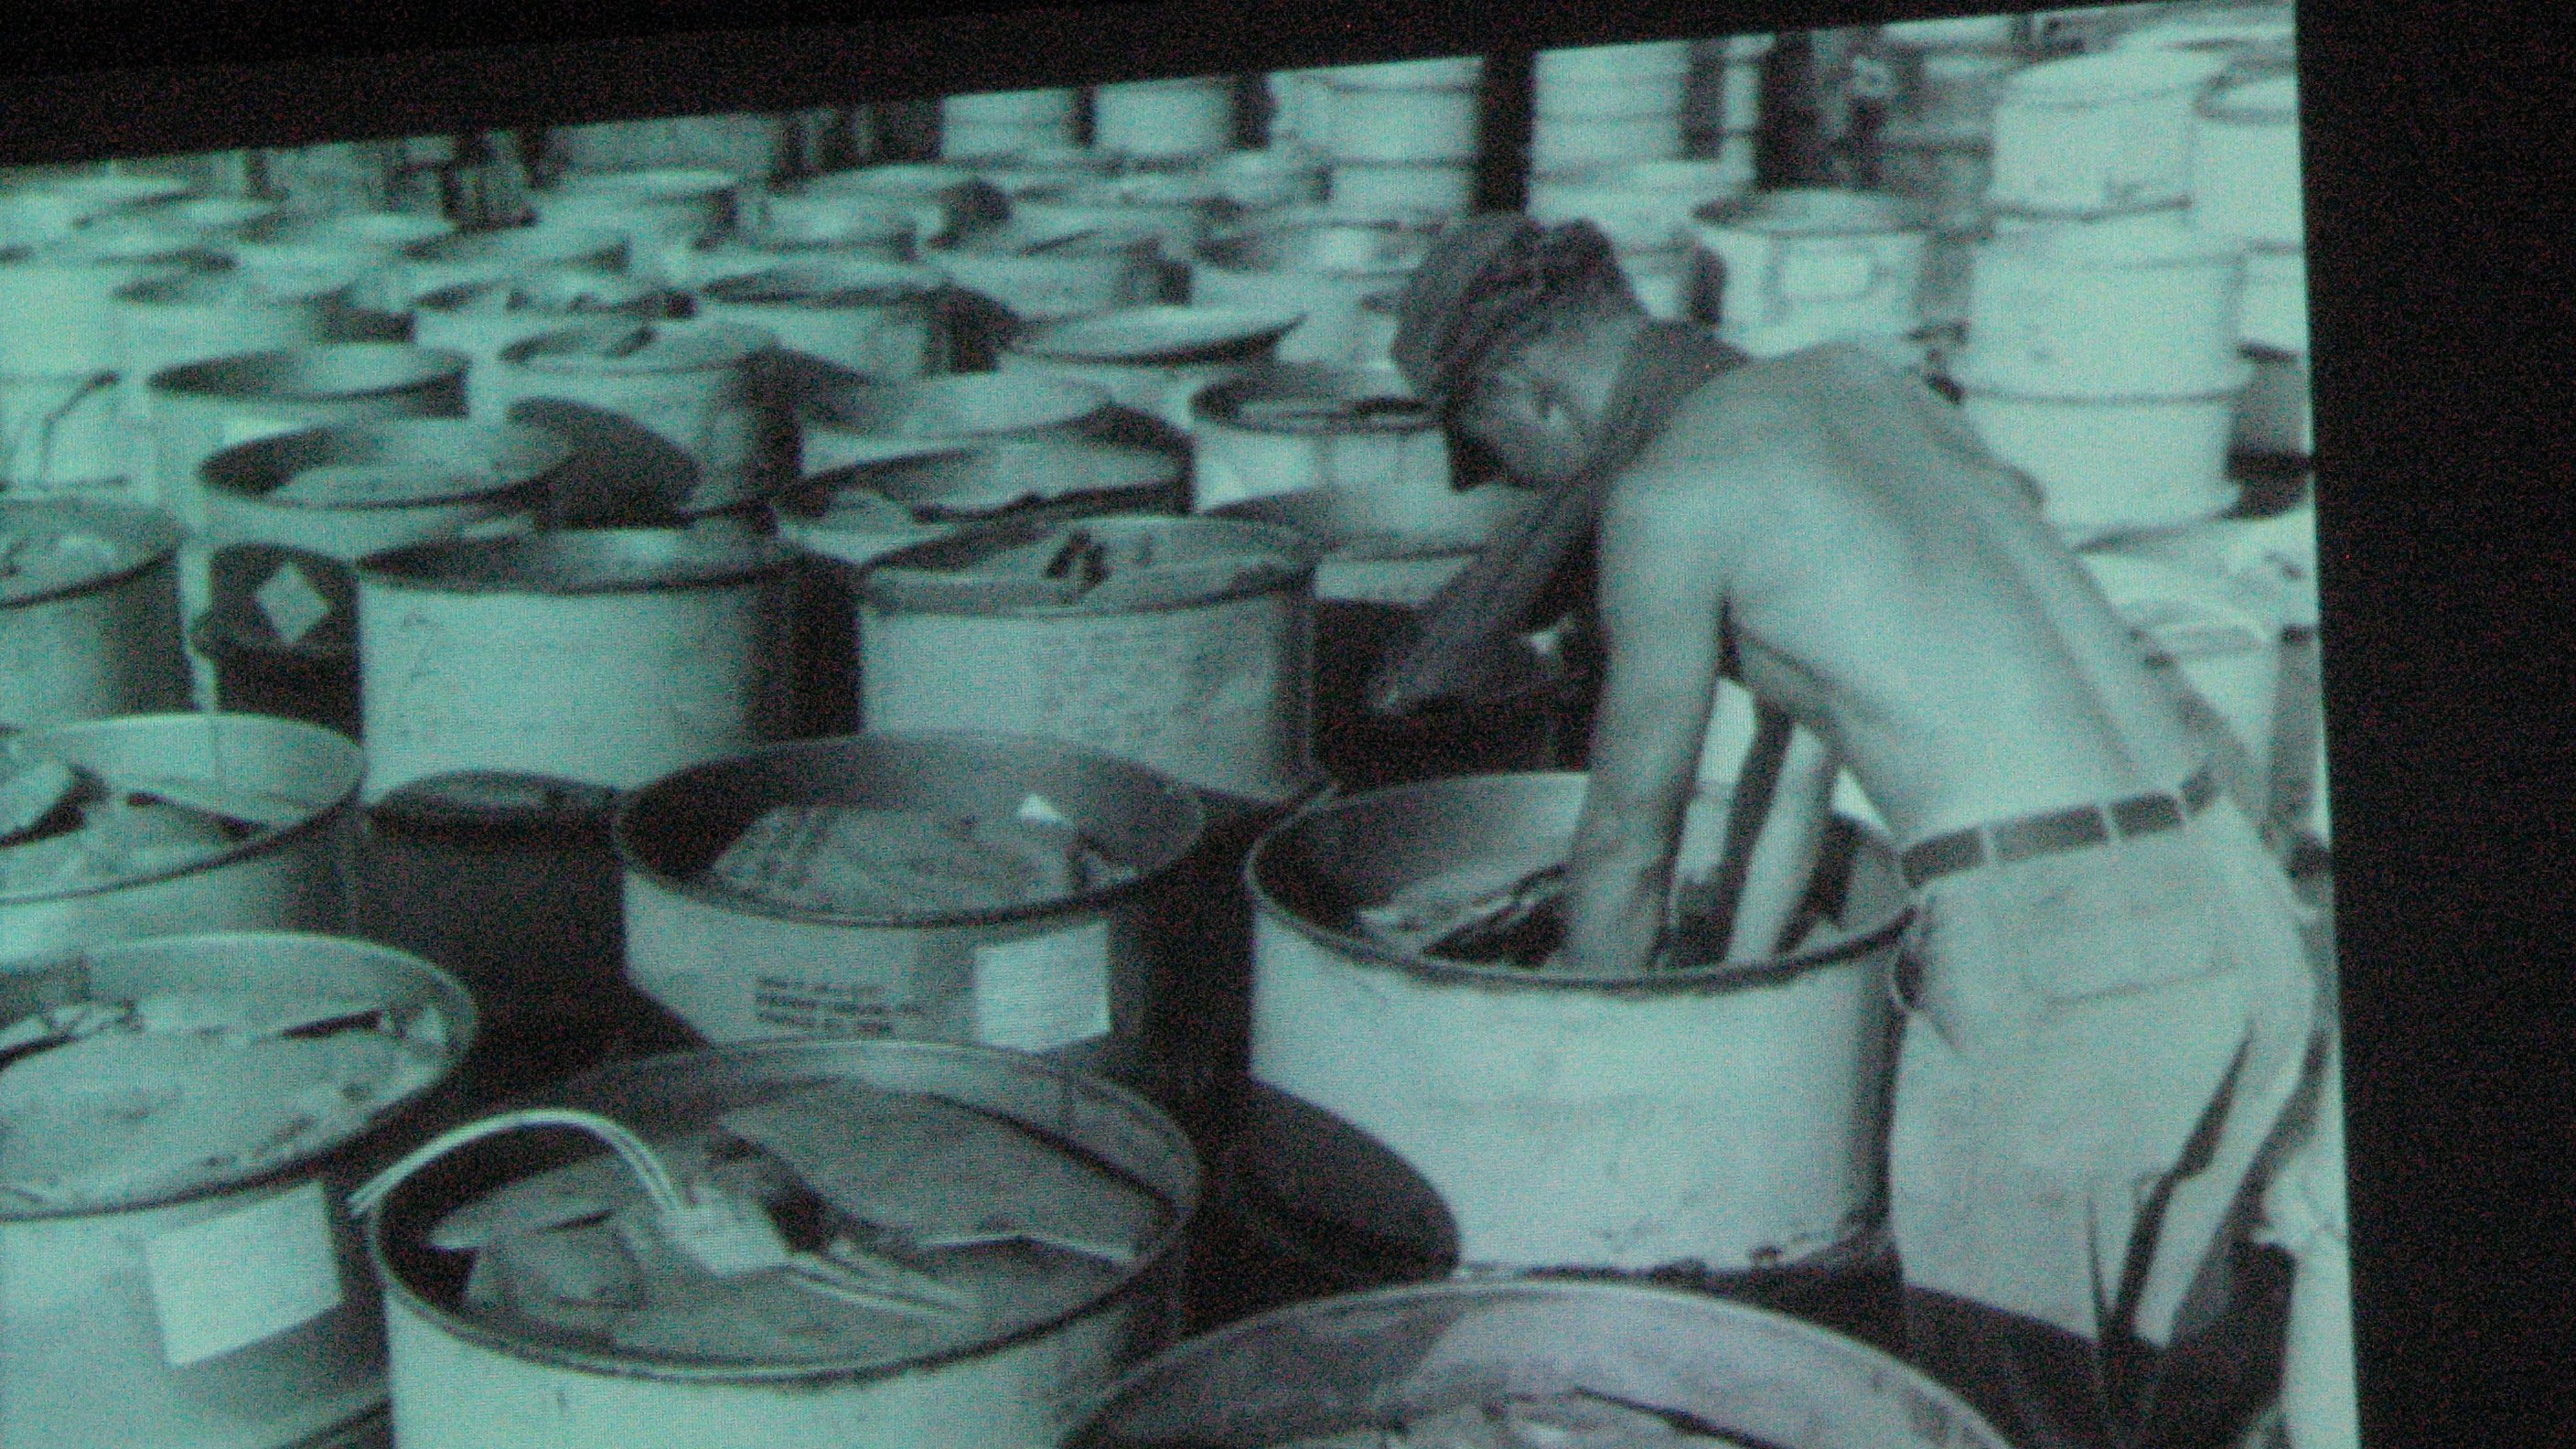 Drums Of Agent Orange From Video | Image from VVA Video